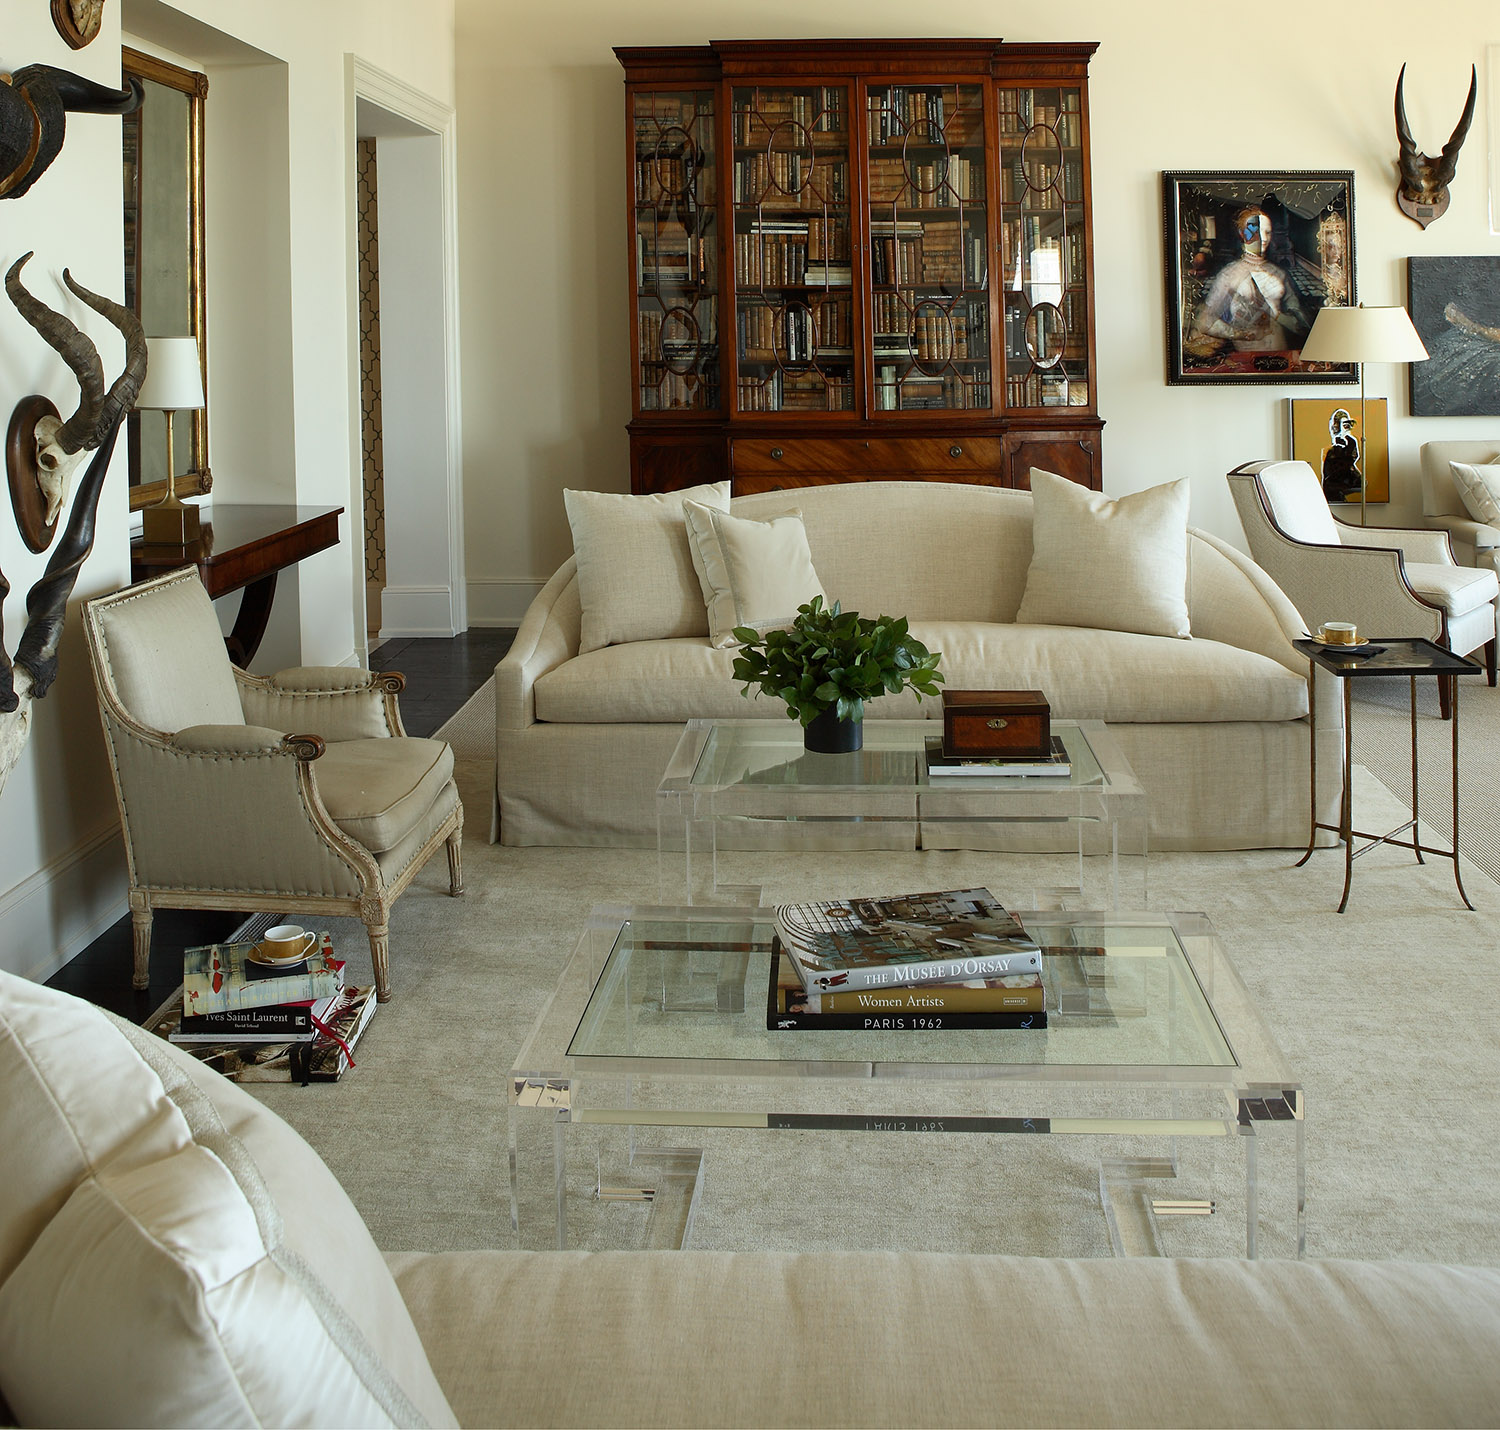 2015 aso decorator show house design indulgence i constantly see this room on pinterest